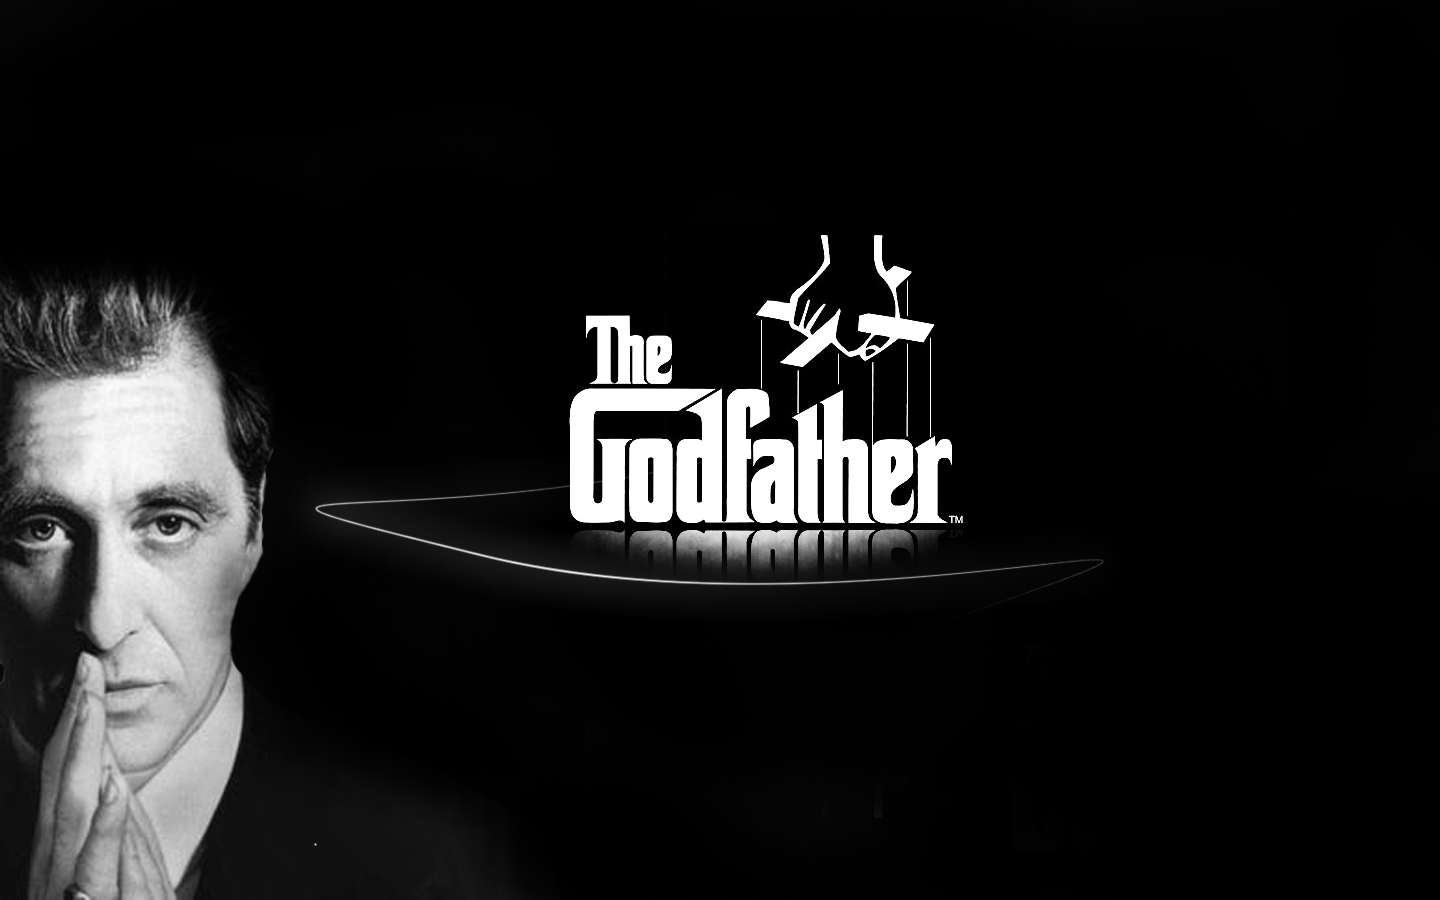 Godfather Backgrounds (PC, Mobile, Gadgets) Compatible | 1440x900 px